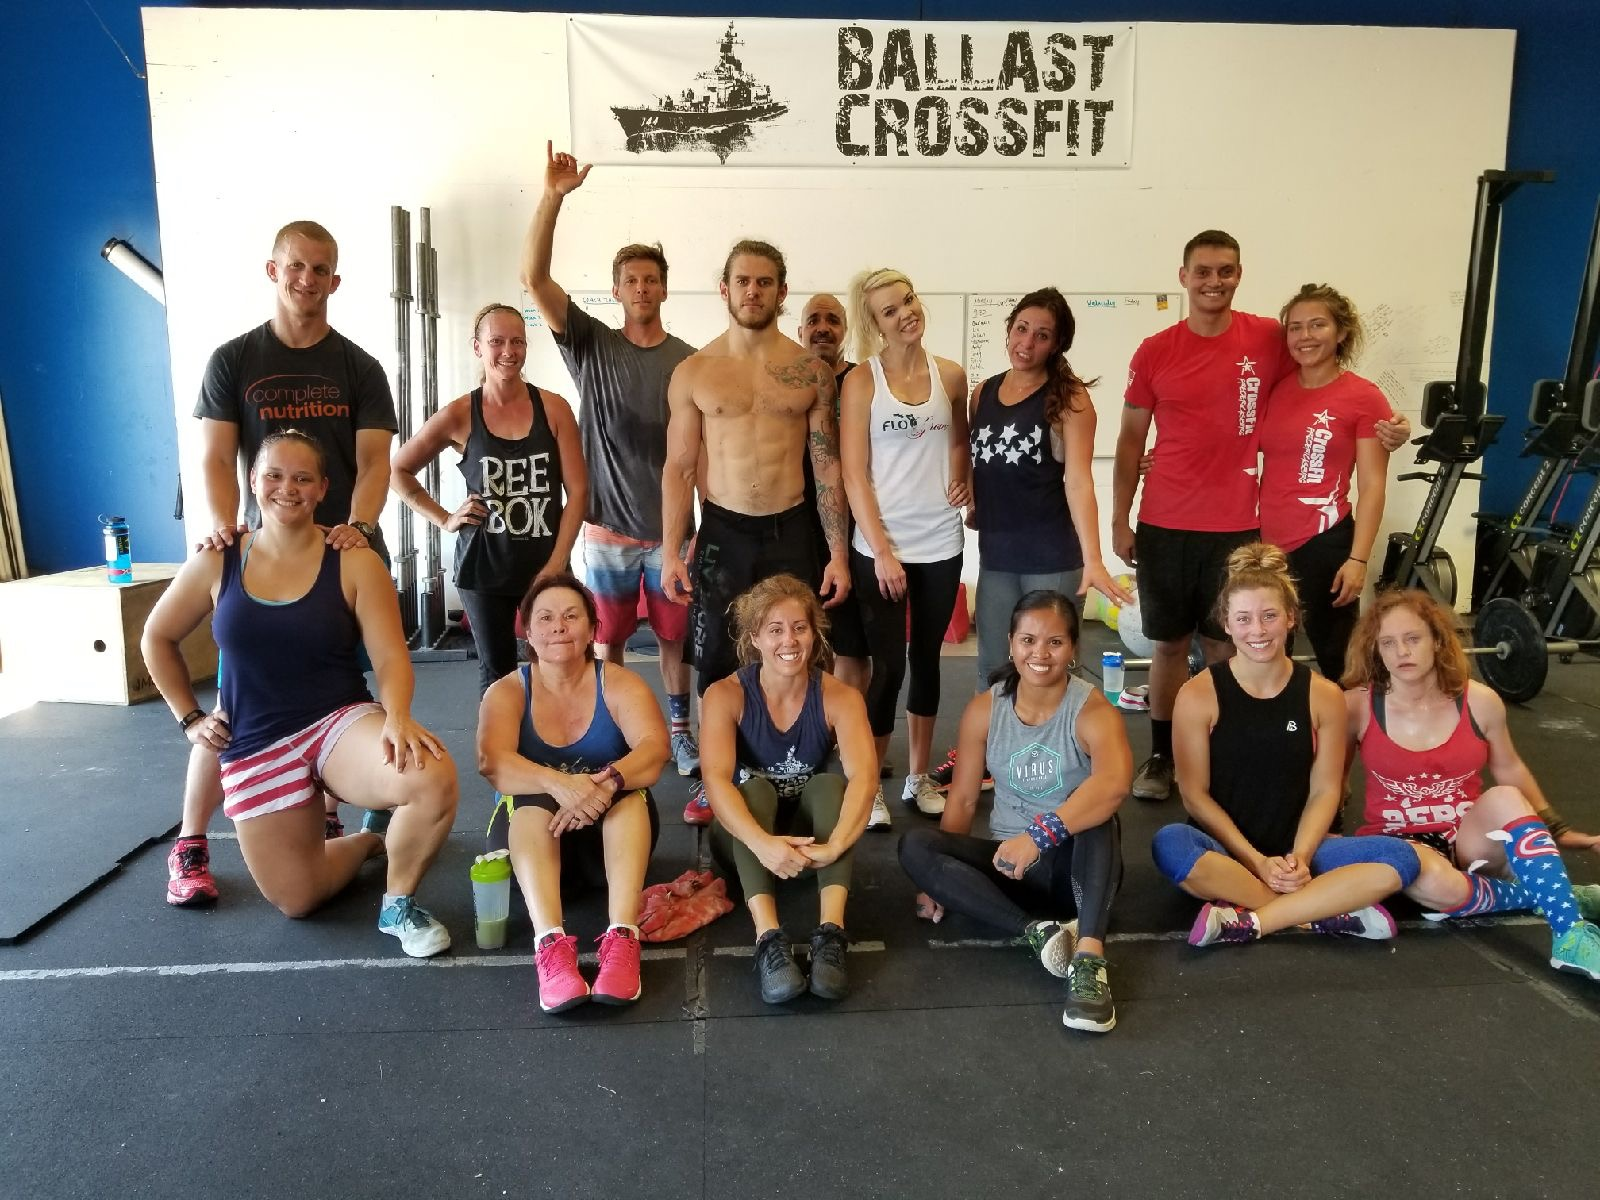 Happy 4th of July America. Great day of fitness with an even greater community. Thank you to everyone at Ballast for making CrossFit enjoyable.